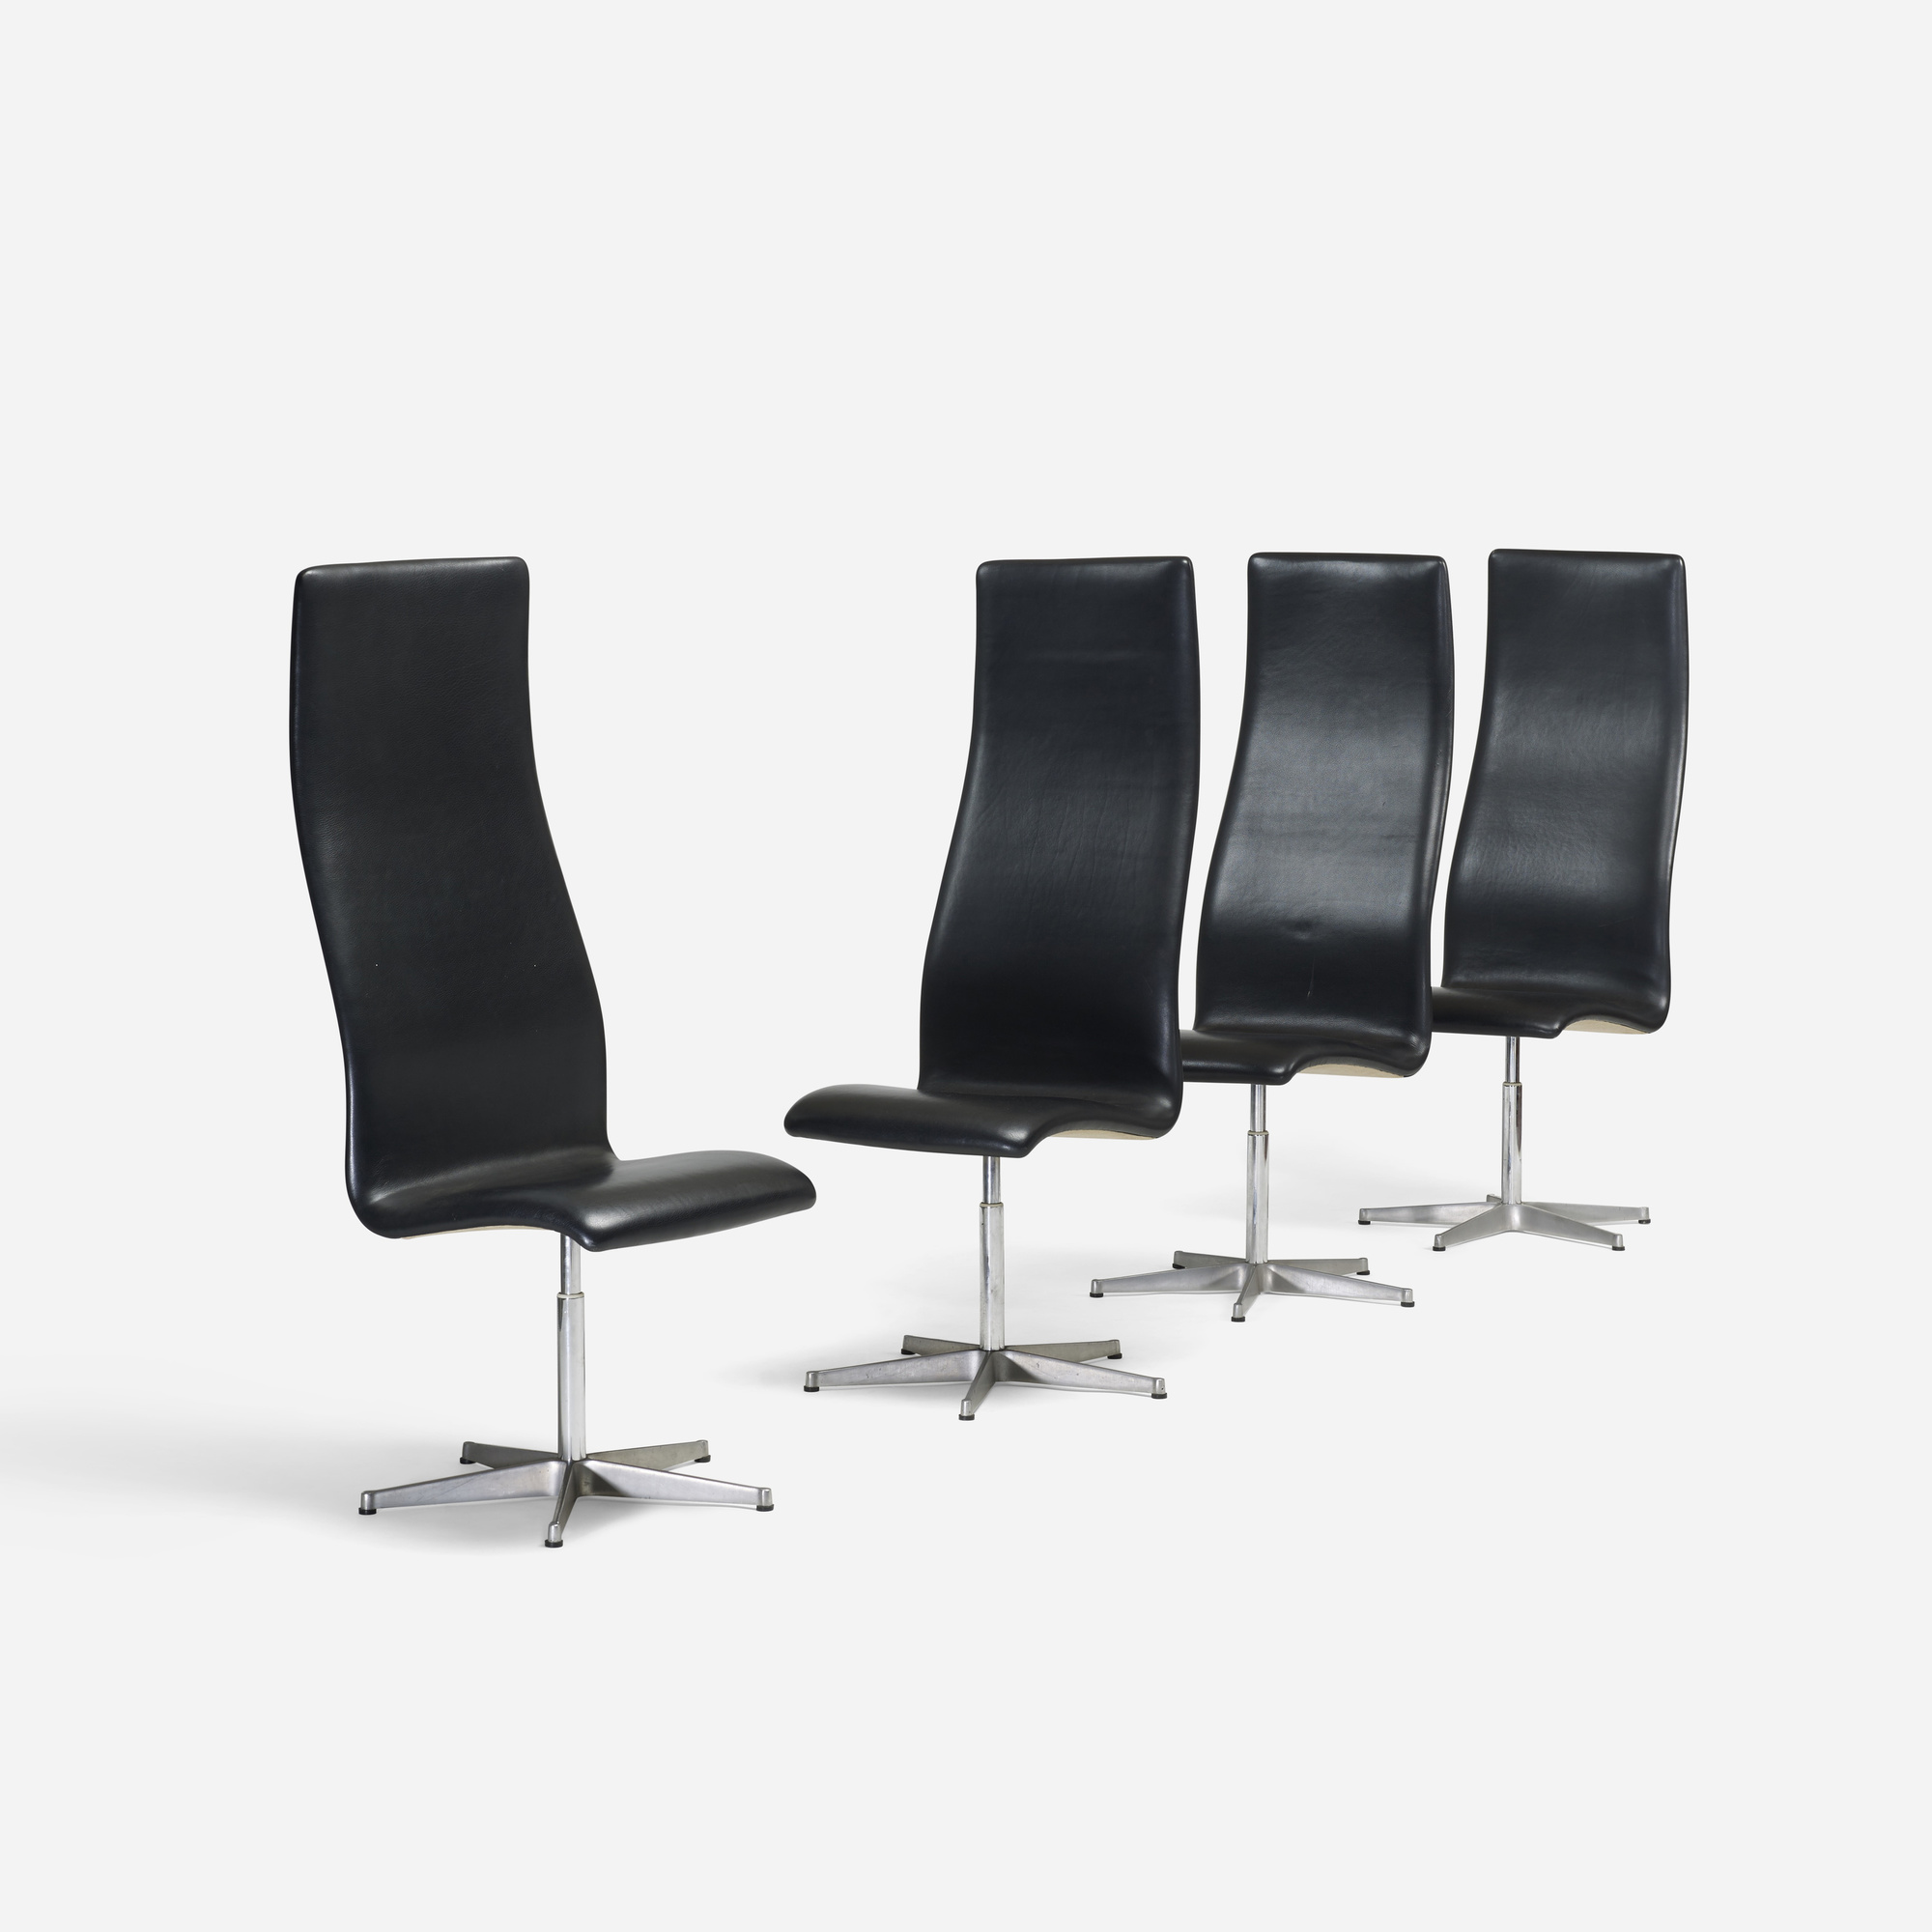 115: Arne Jacobsen / Oxford chairs model 7403, set of four (1 of 3)